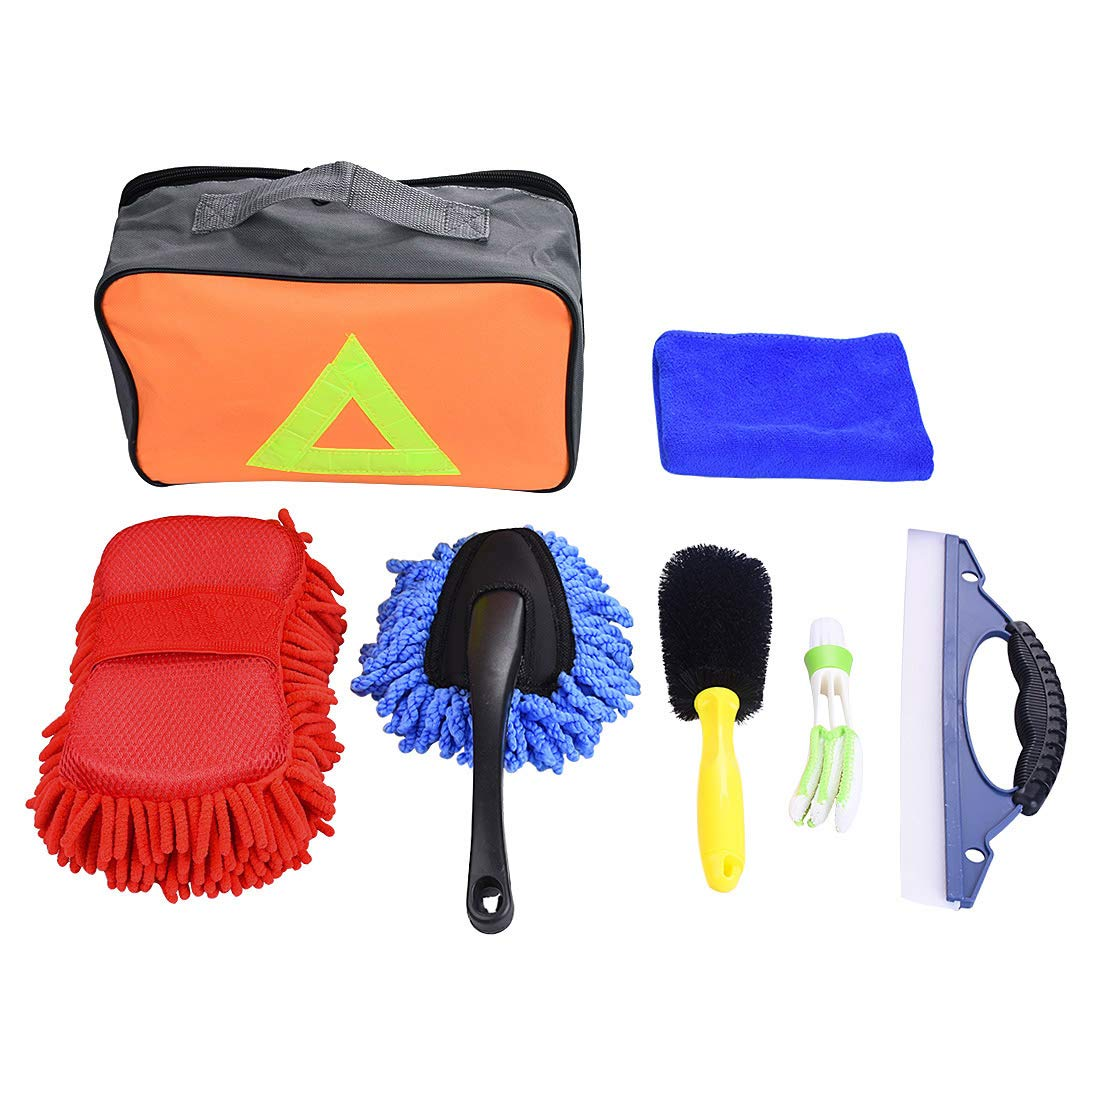 YUENA CARE Car Washing Cleaning Tools Kits With Bag Tire Brush Wash Sponge Duster Wash Cloth